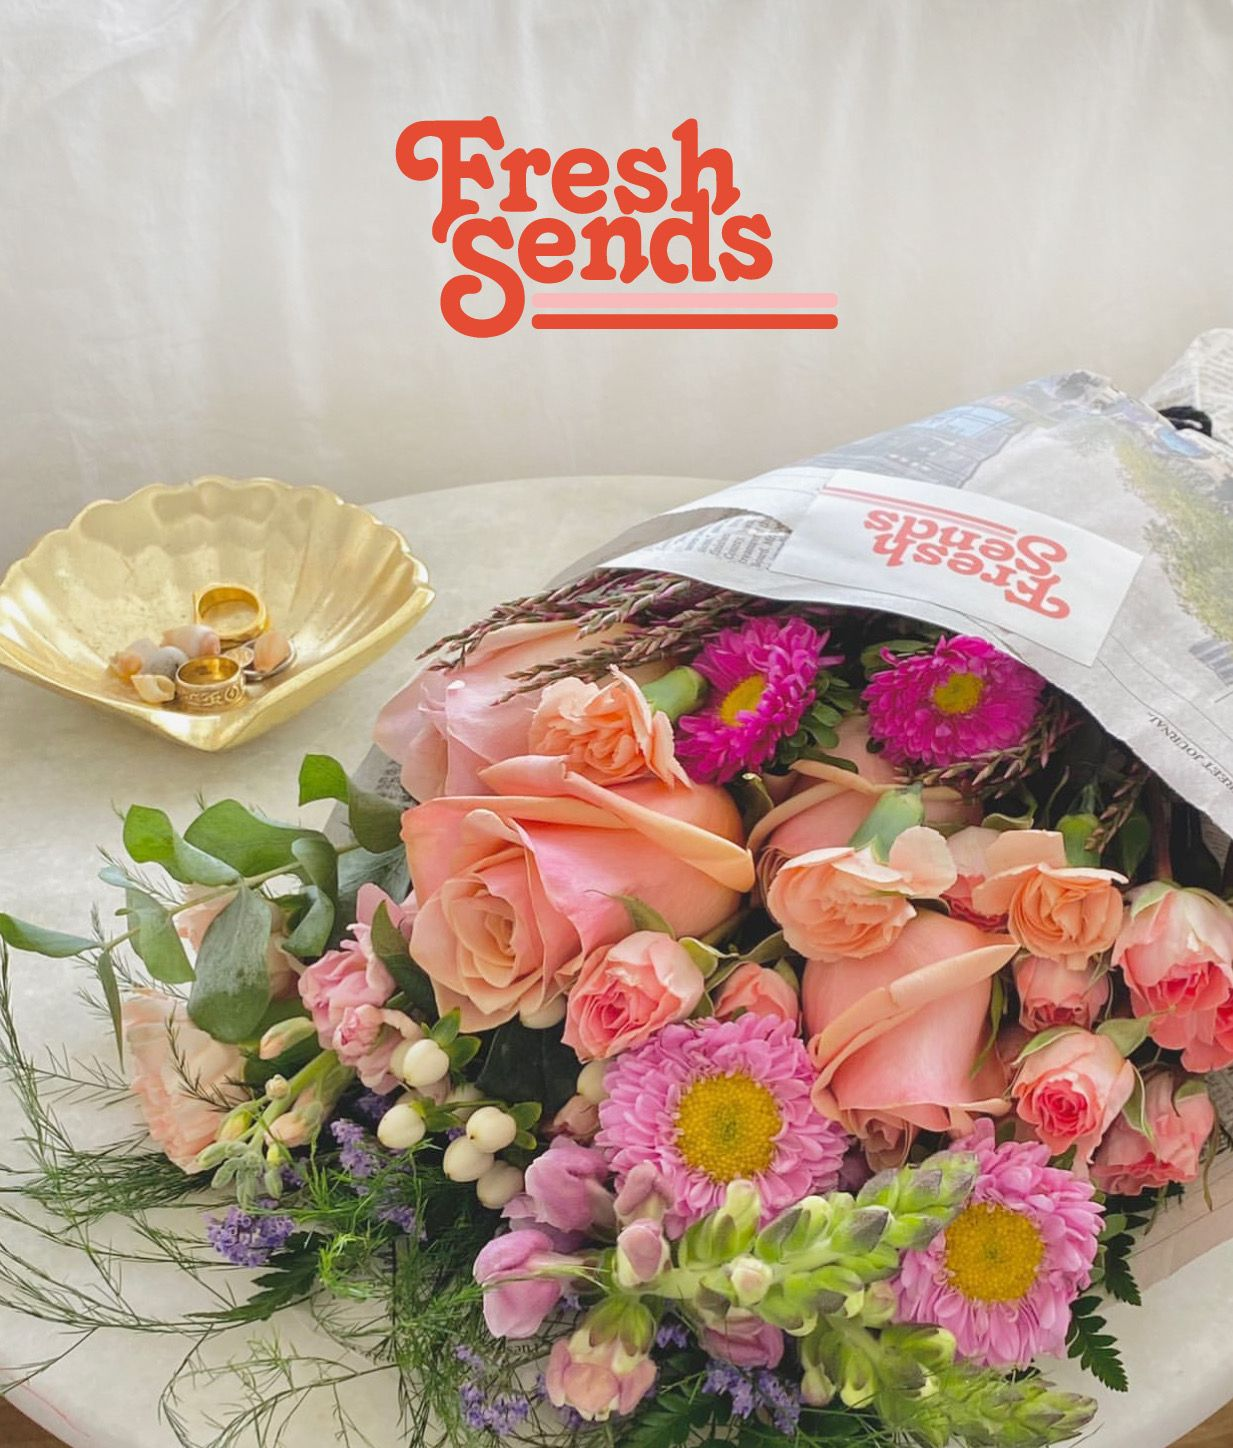 Fresh Sends Modern, Easy Floral Delivery in 2020